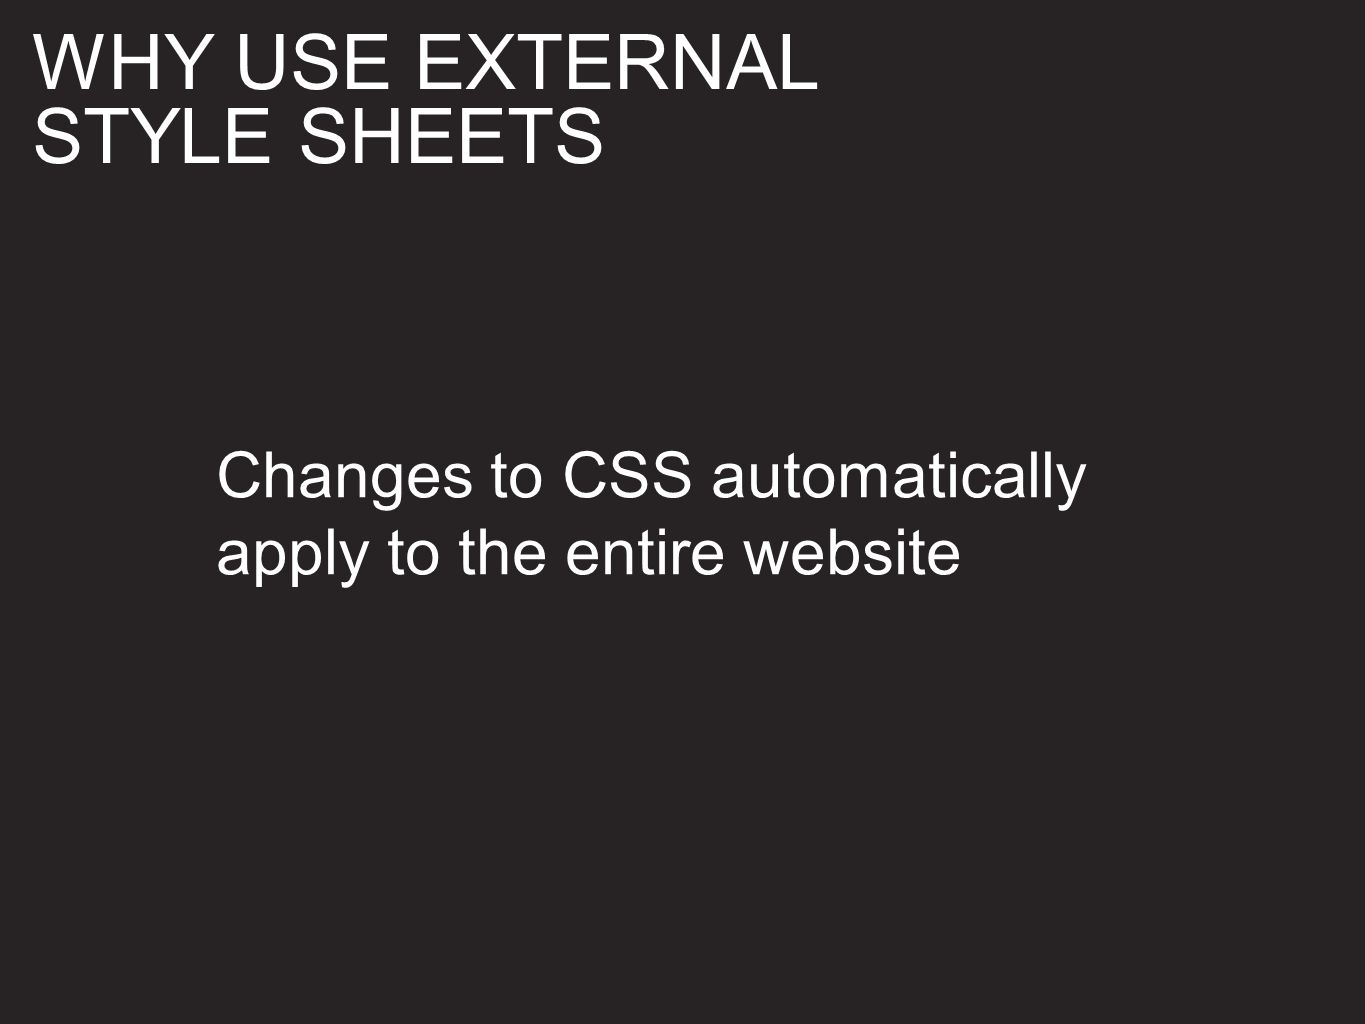 Changes to CSS automatically apply to the entire website WHY USE EXTERNAL STYLE SHEETS